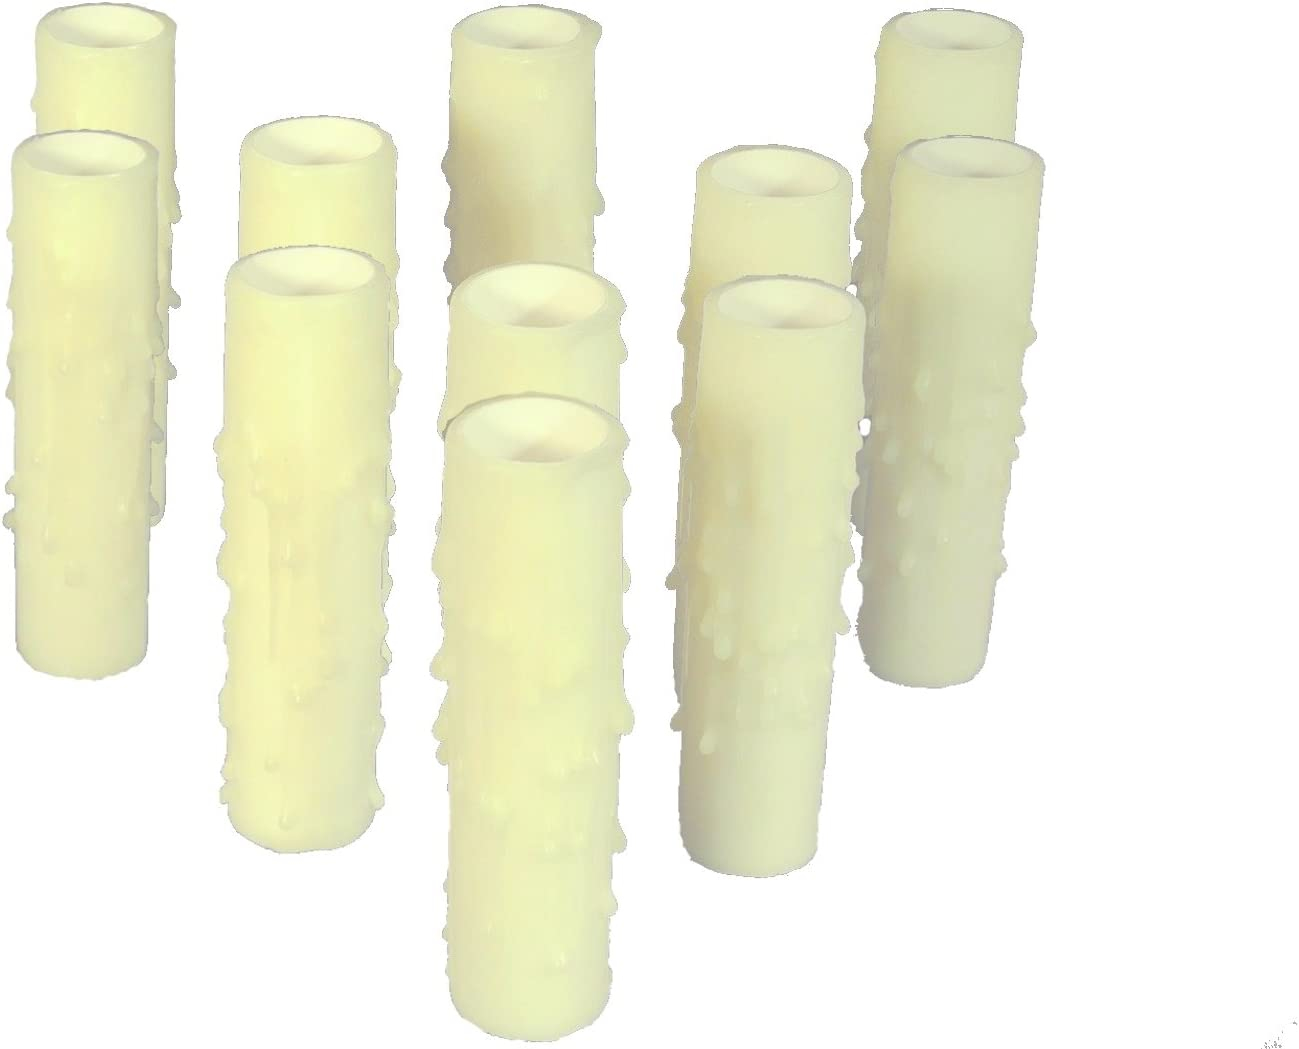 Socket Sleeves Chandelier Socket Covers Set of 12 pc 3 Tall Bone Candelabra Base Thin 3//4 Inner Diameter Beeswax Candle Covers